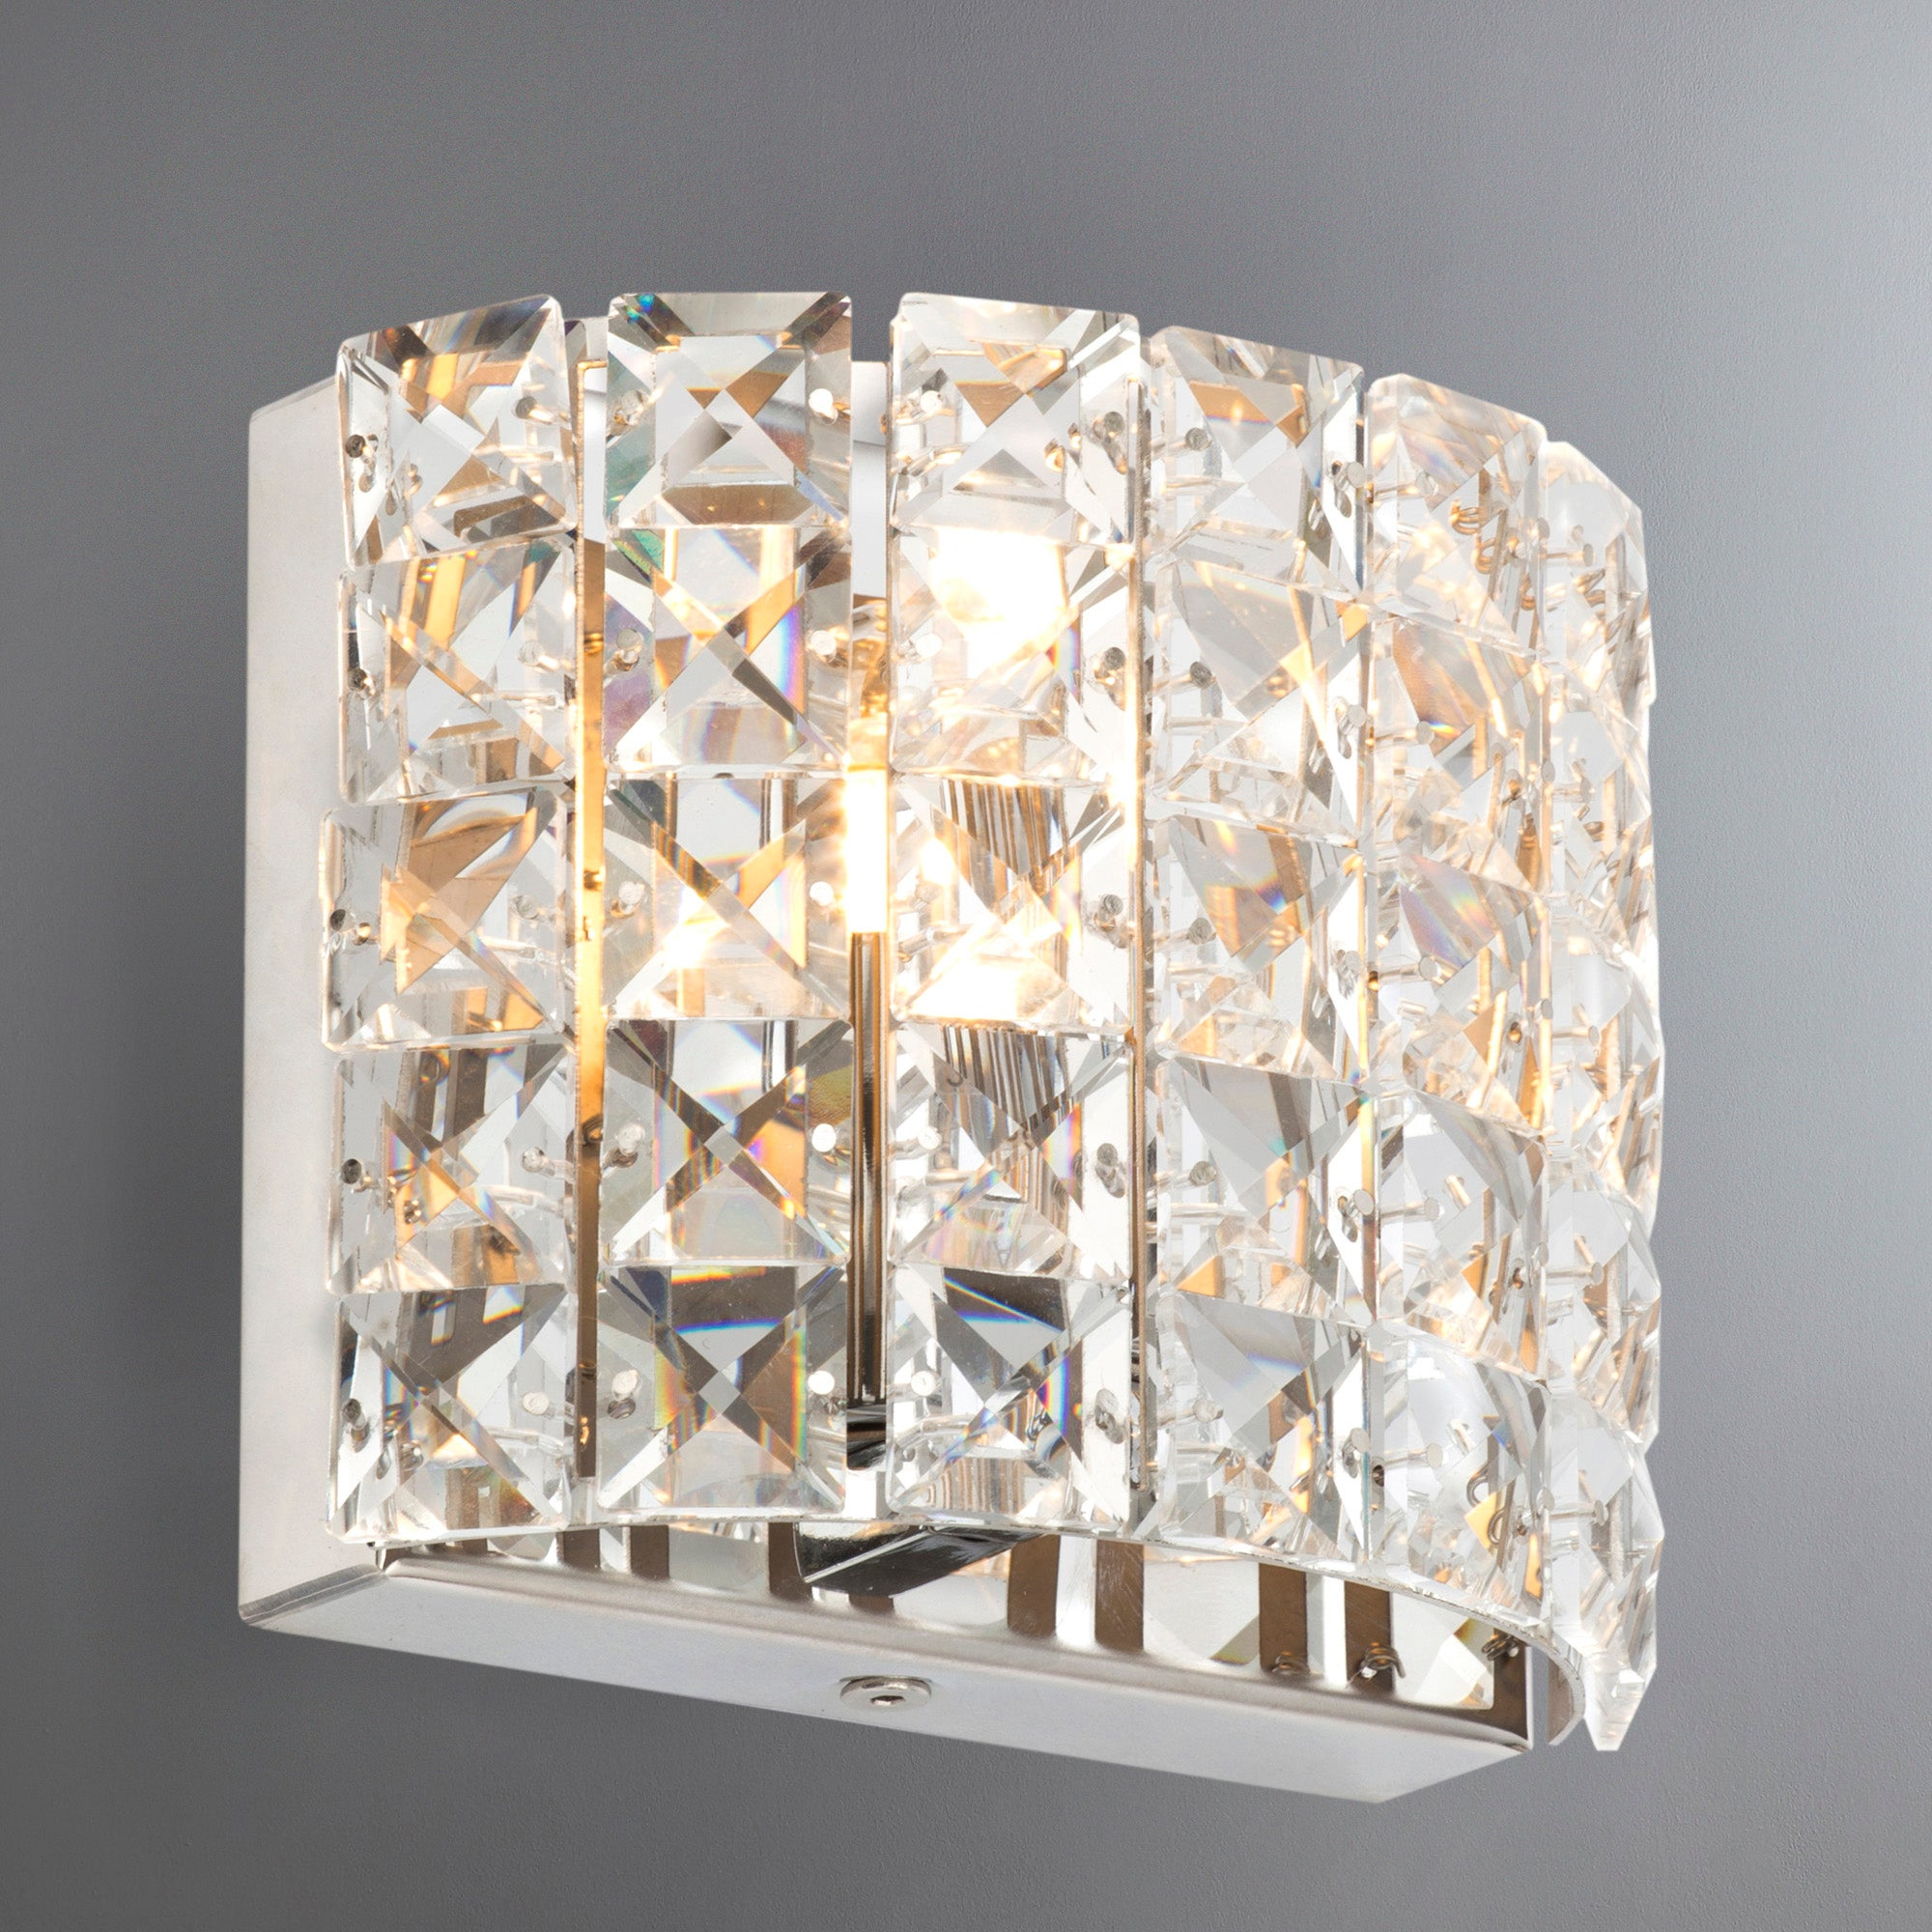 Image of Marquis by Waterford Moy Chrome Wall Light Chrome